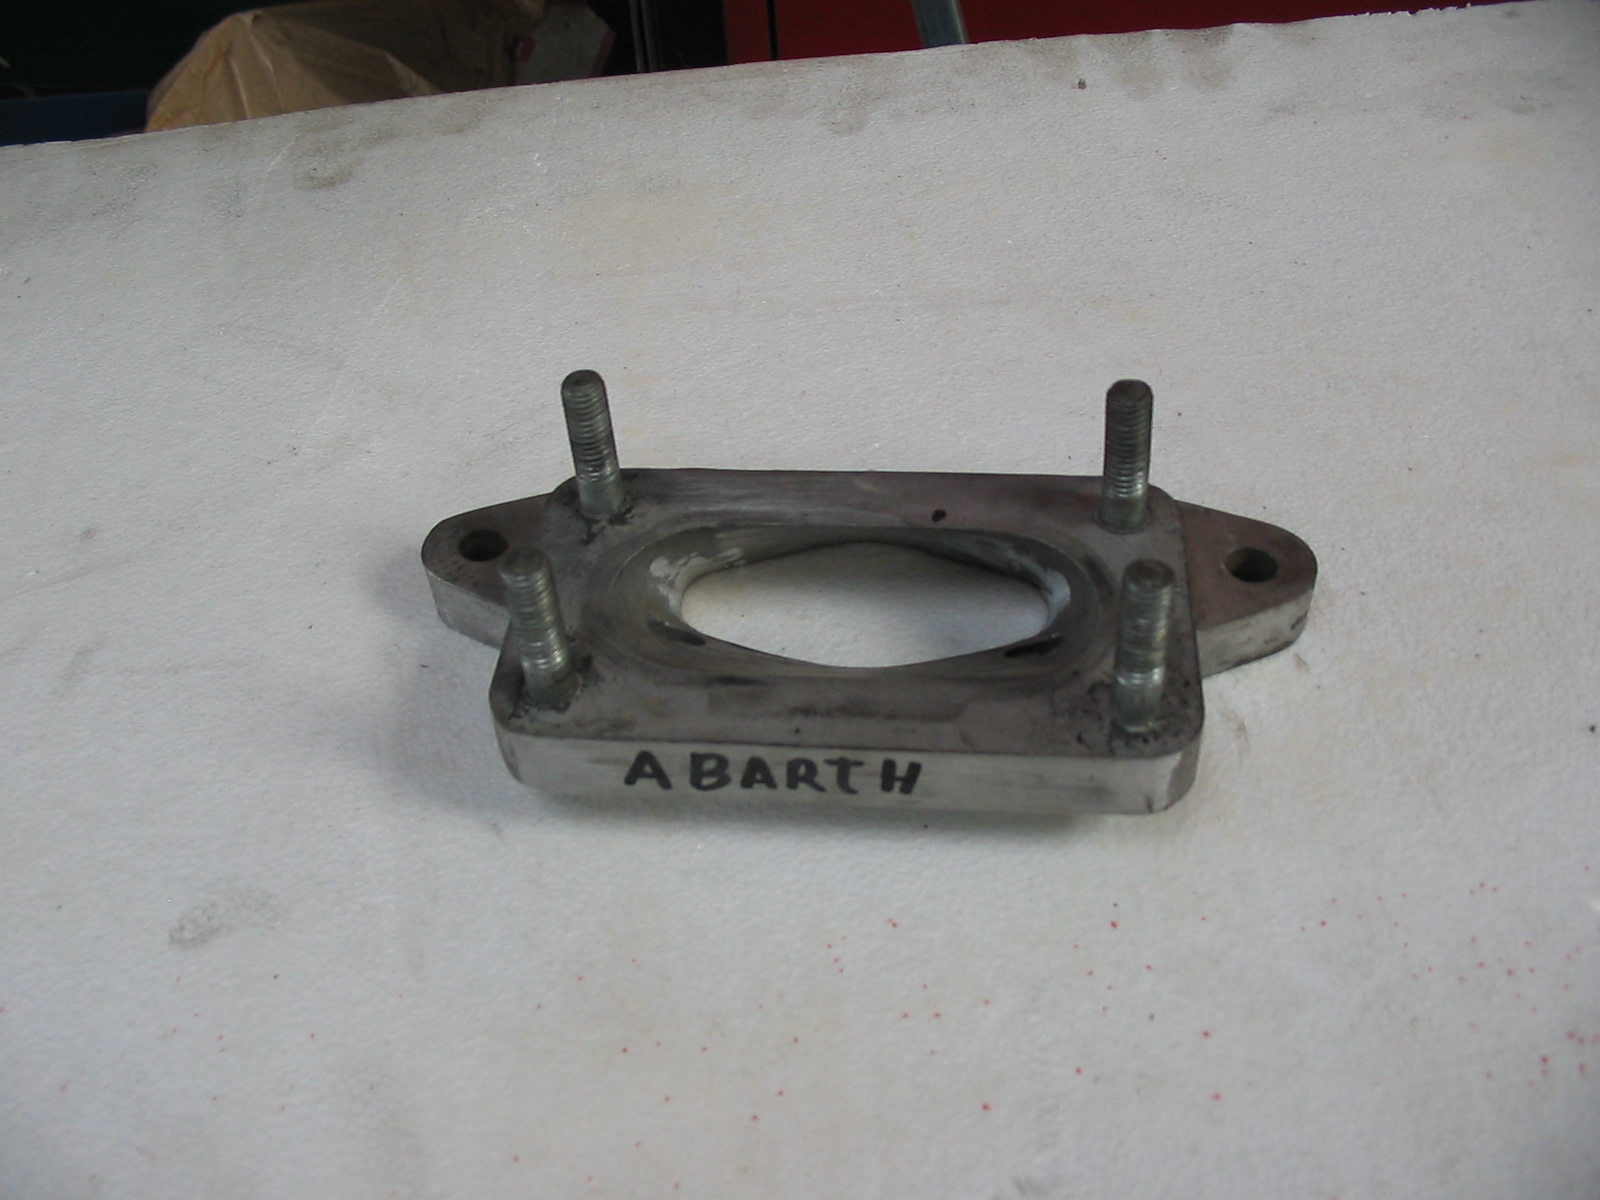 Parts for Fiat Abarth 850 and